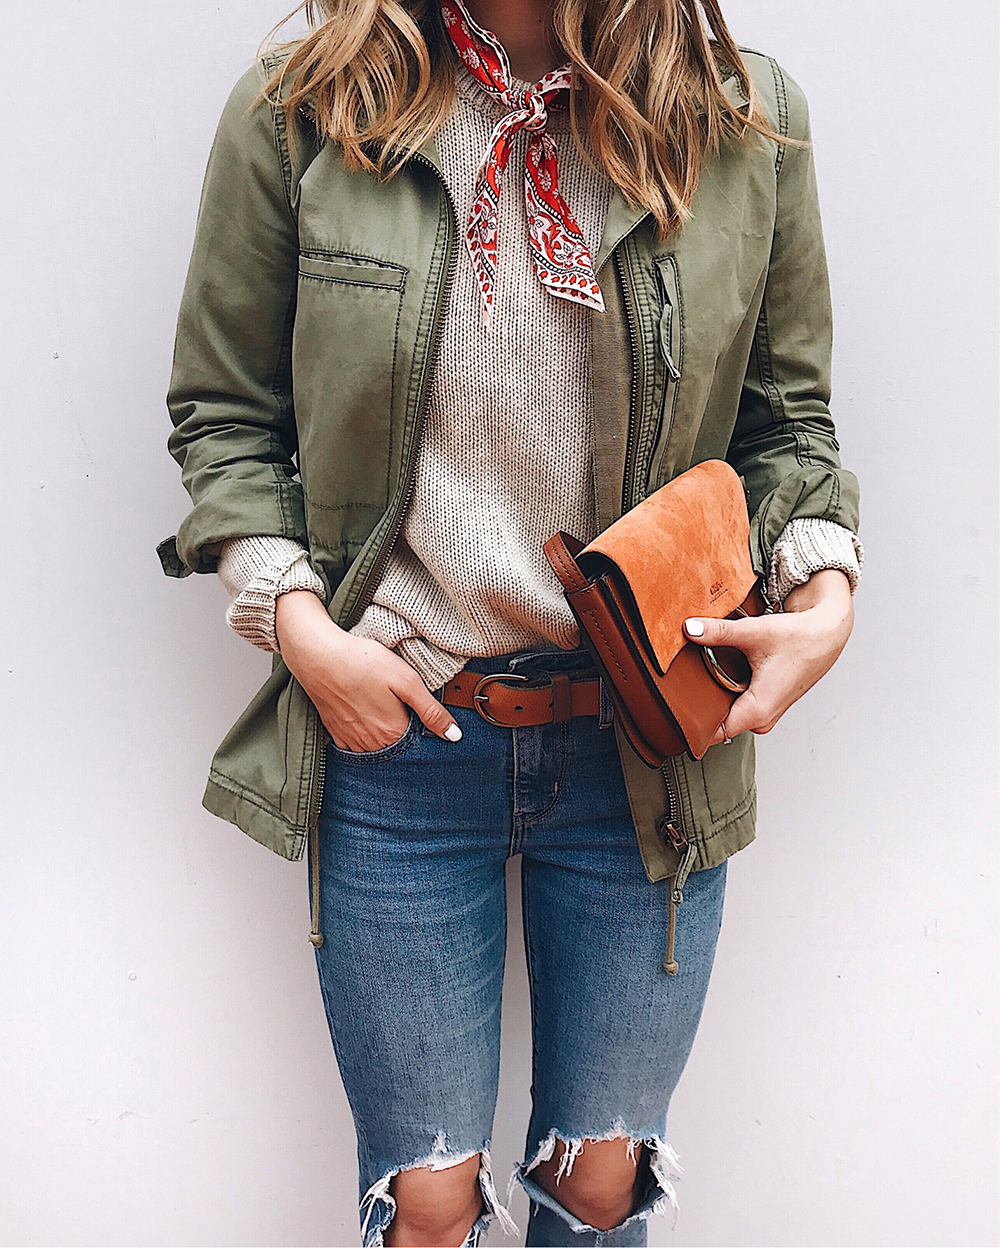 livvyland-blog-olivia-watson-utility-jacket-army-surplus-oatmeal-sweater-levis-721-madewell-outfit